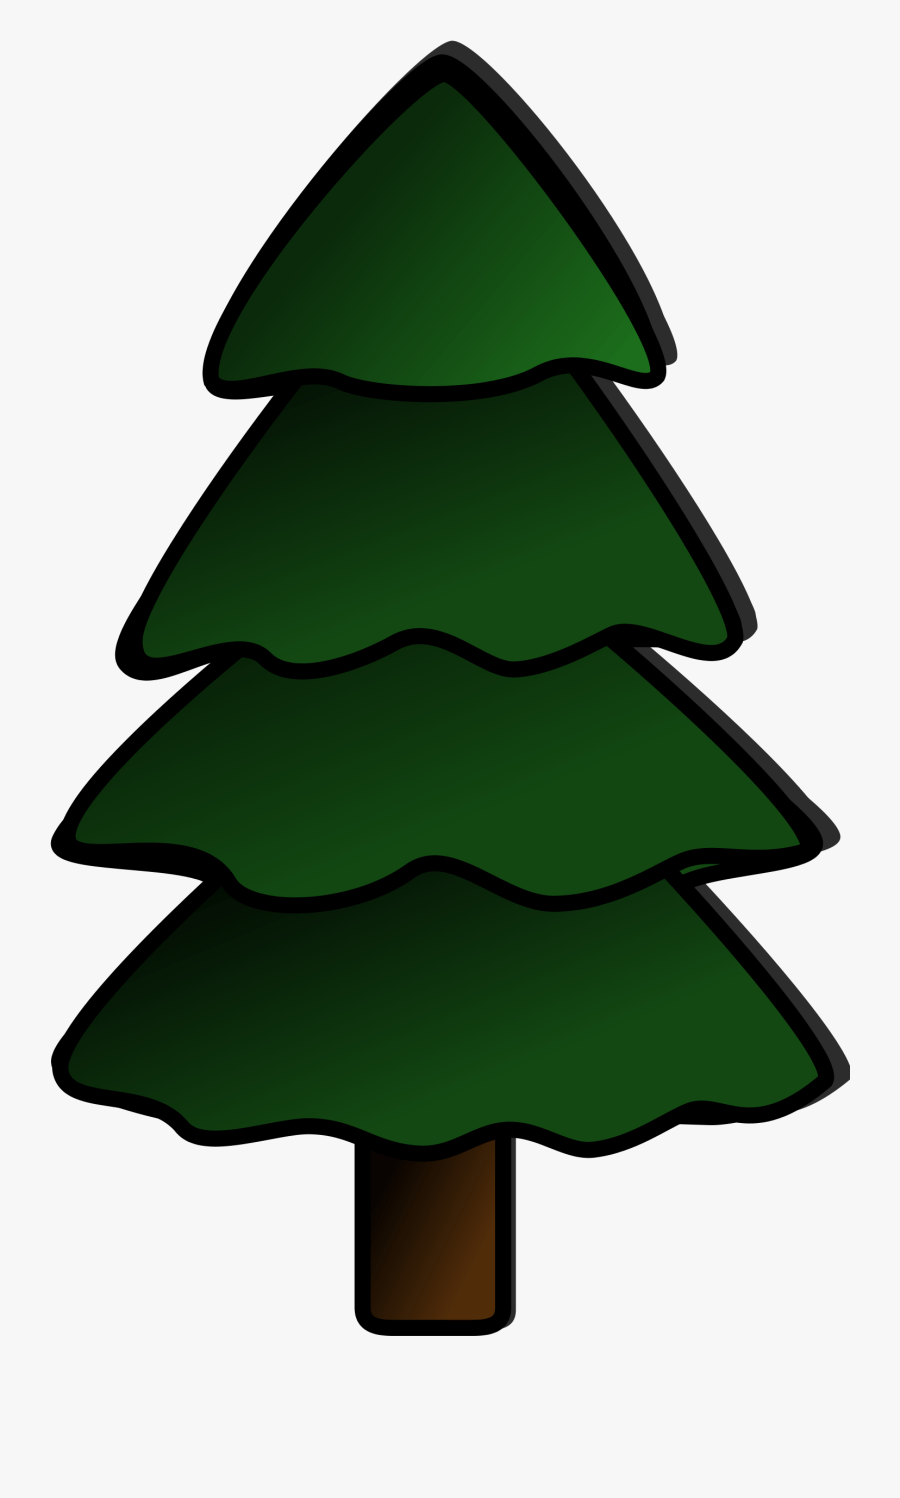 Pine Tree Clip Art Free : Clipart, Images, Transparent, ClipartKey